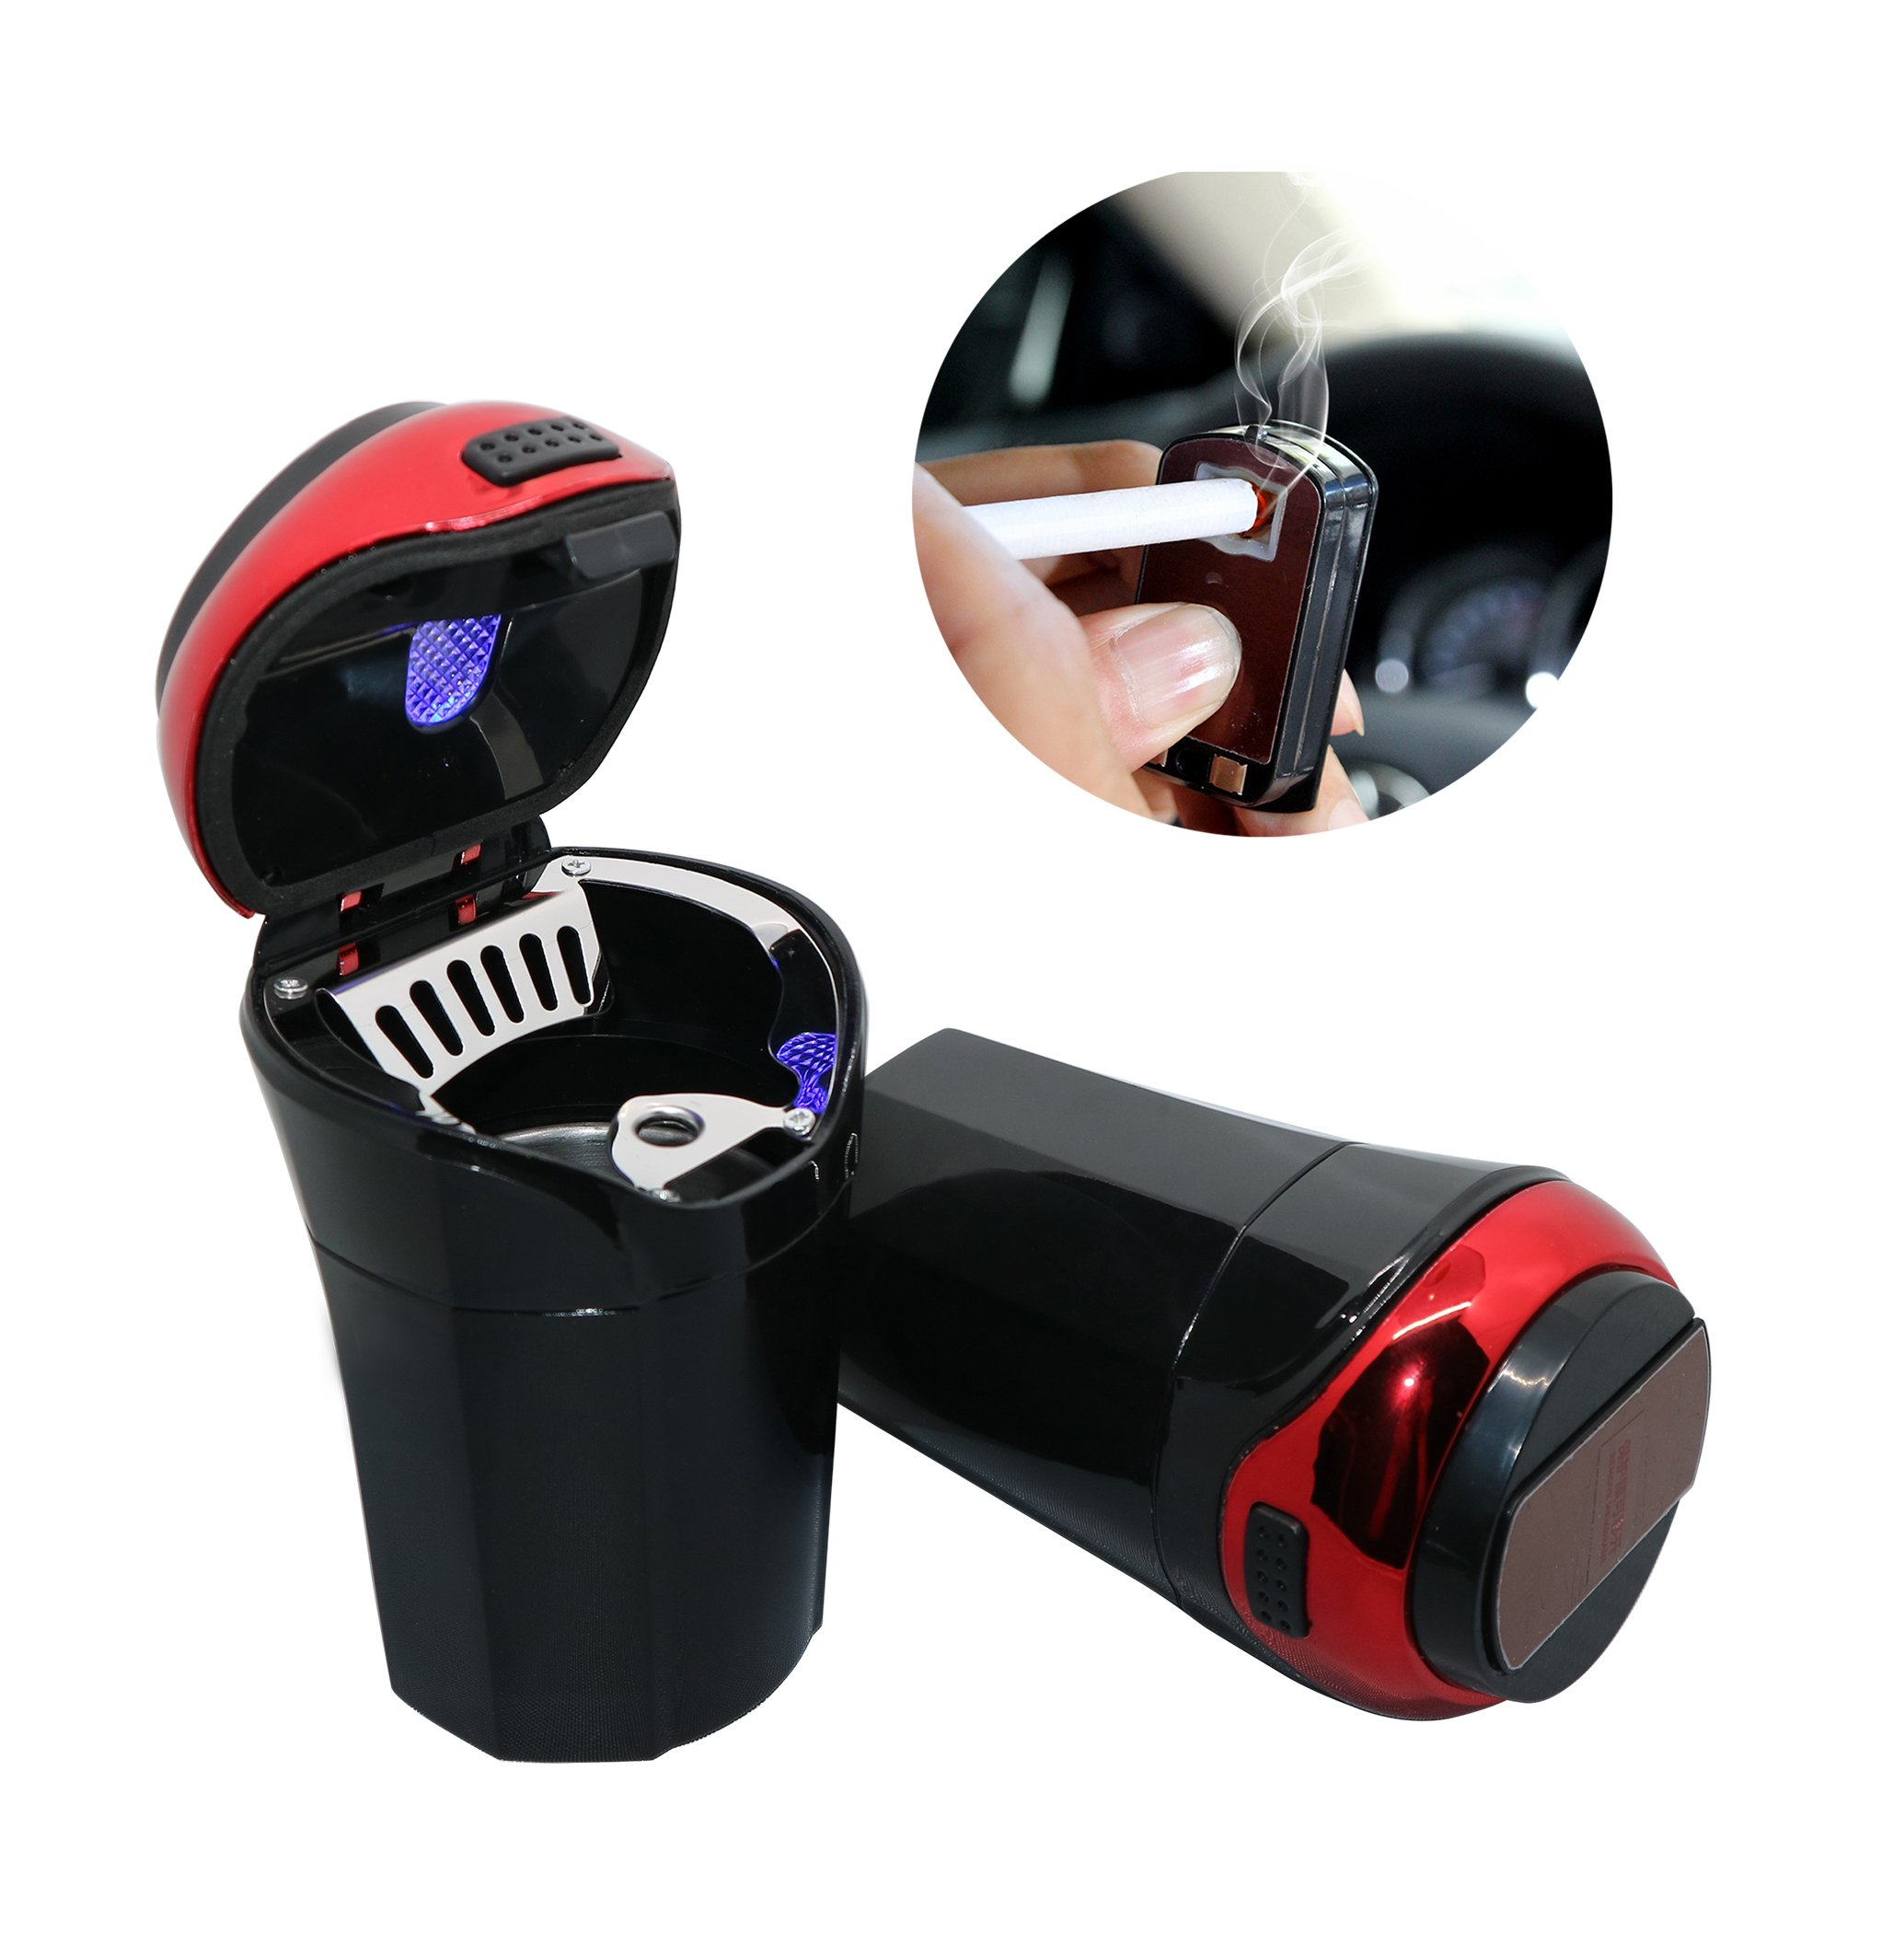 OUYIA Car Ashtray for Most Car Cup Holder, Smokeless Ashtray Cup with Lid Detachable Lighter Suitable for Home&Office(RED)